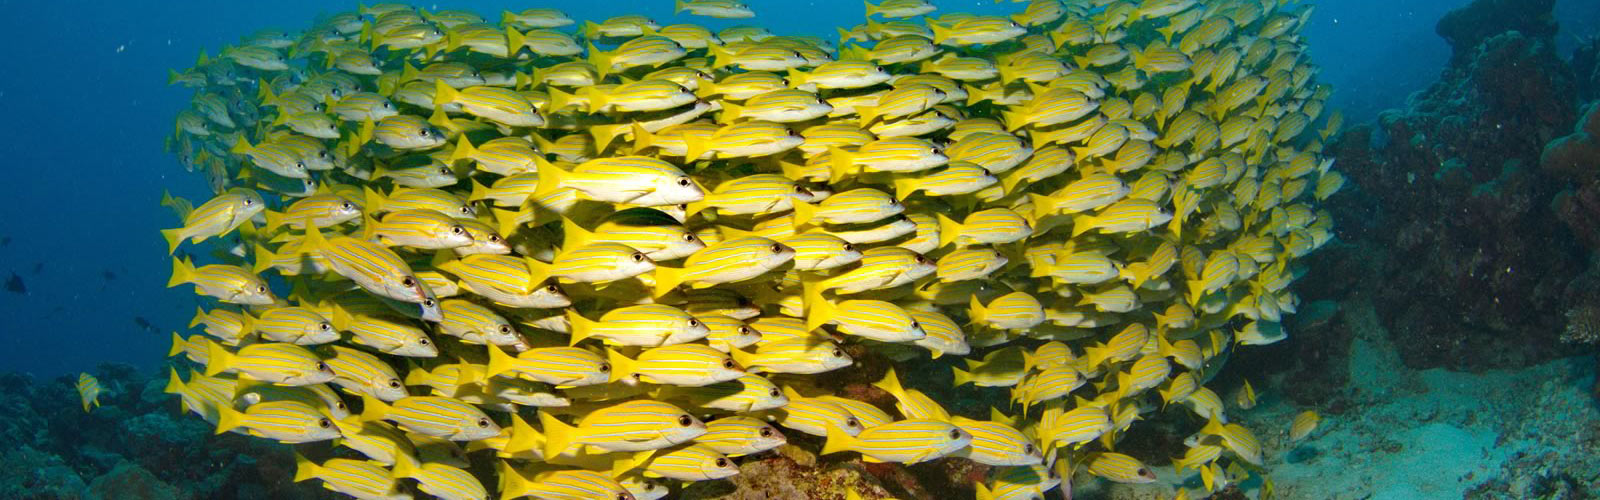 Maldives Snorkelling Marine Life Snappers